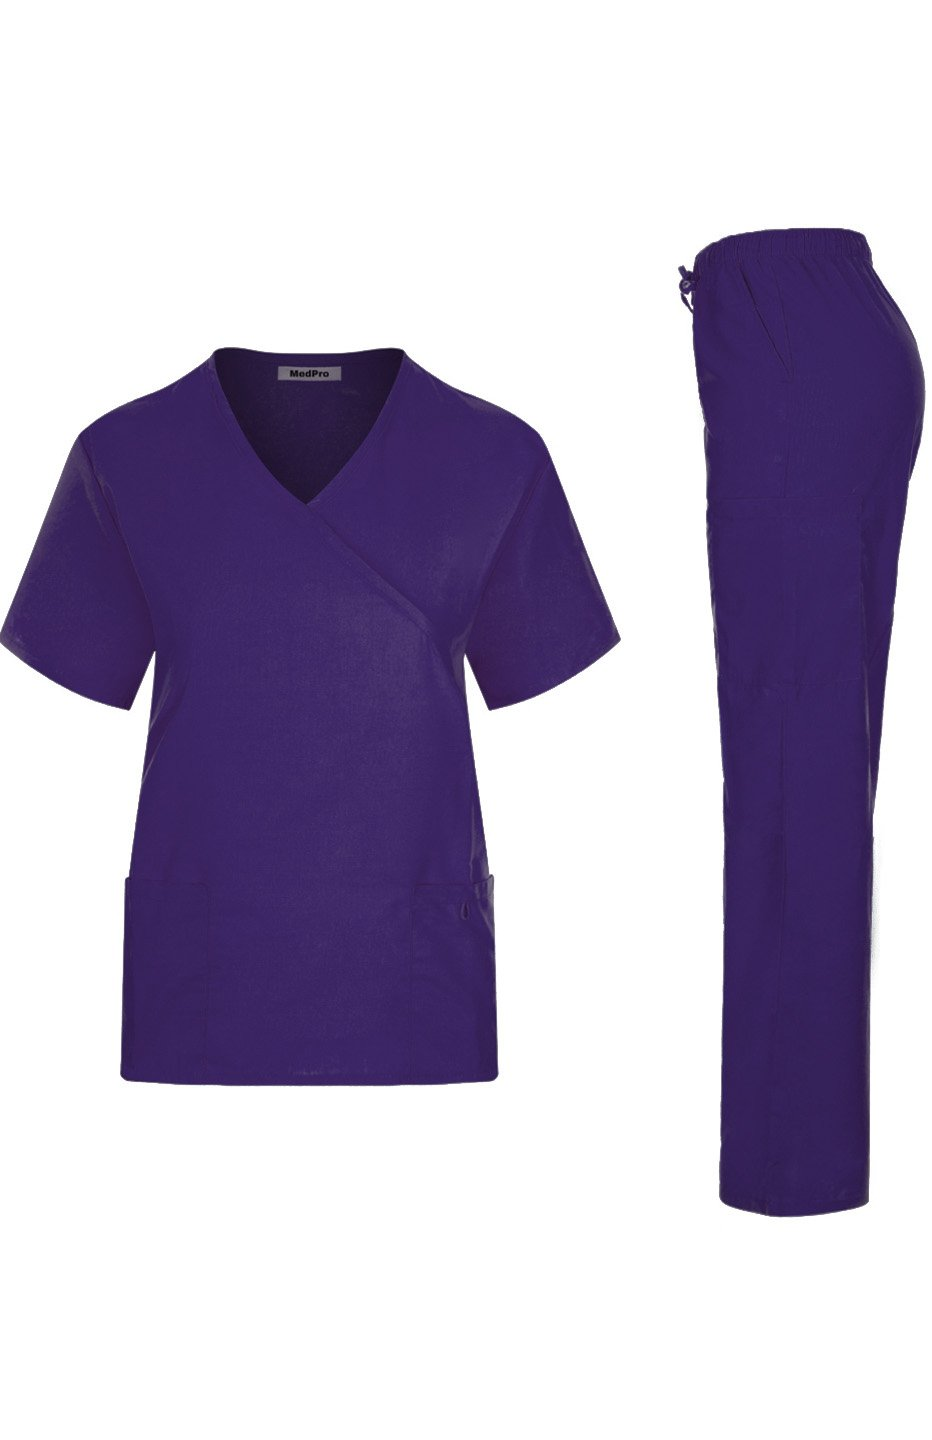 MedPro Women's Medical Scrub Set Mock Wrap and Cargo Purple M (GT-755 Purple)